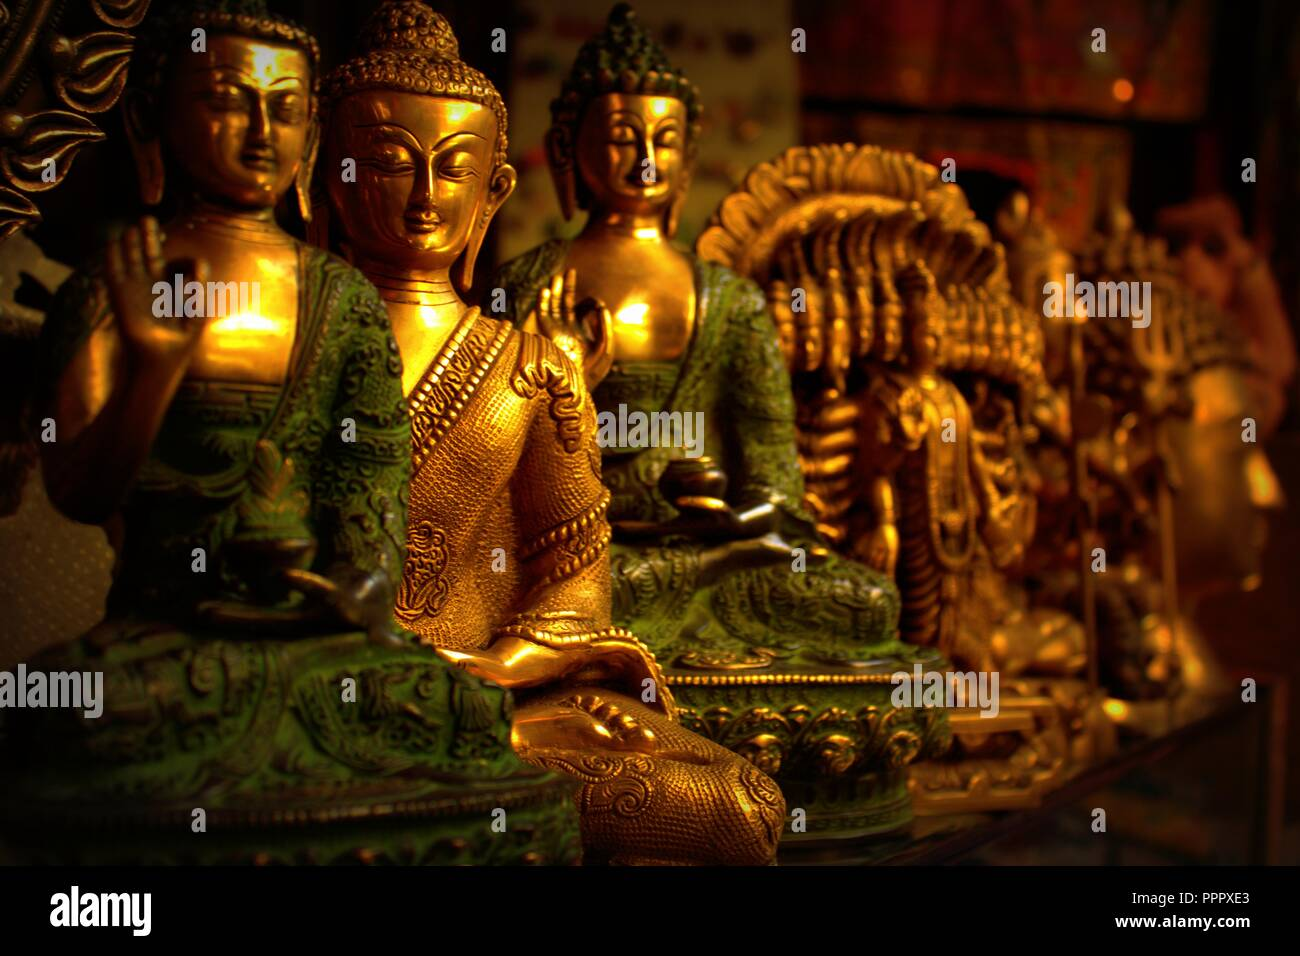 Gautam Buddha High Resolution Stock Photography And Images Alamy